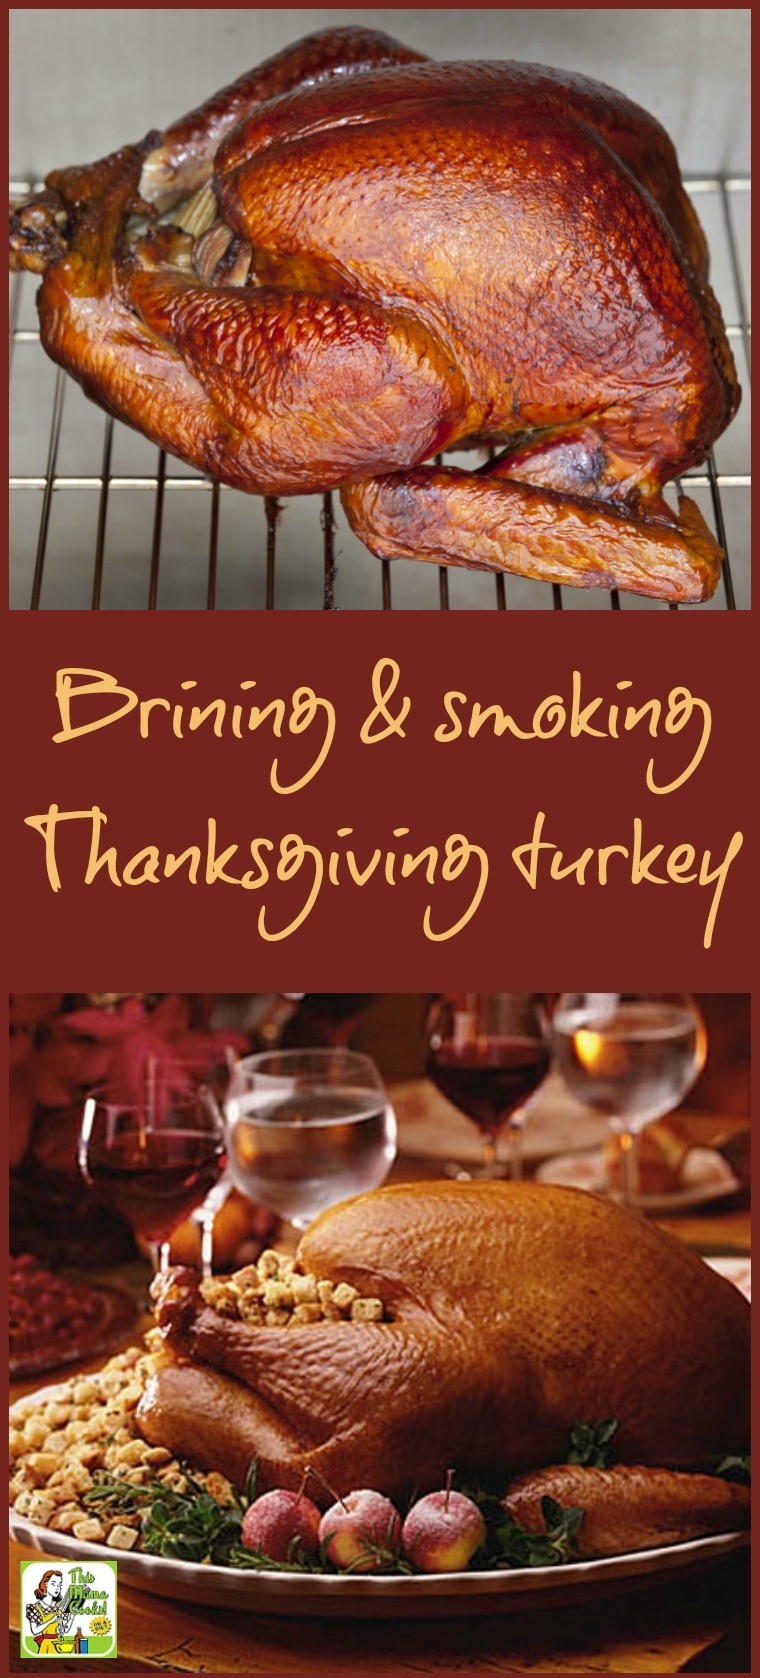 Brining Turkey Recipes Thanksgiving  Brining and smoking your Thanksgiving turkey